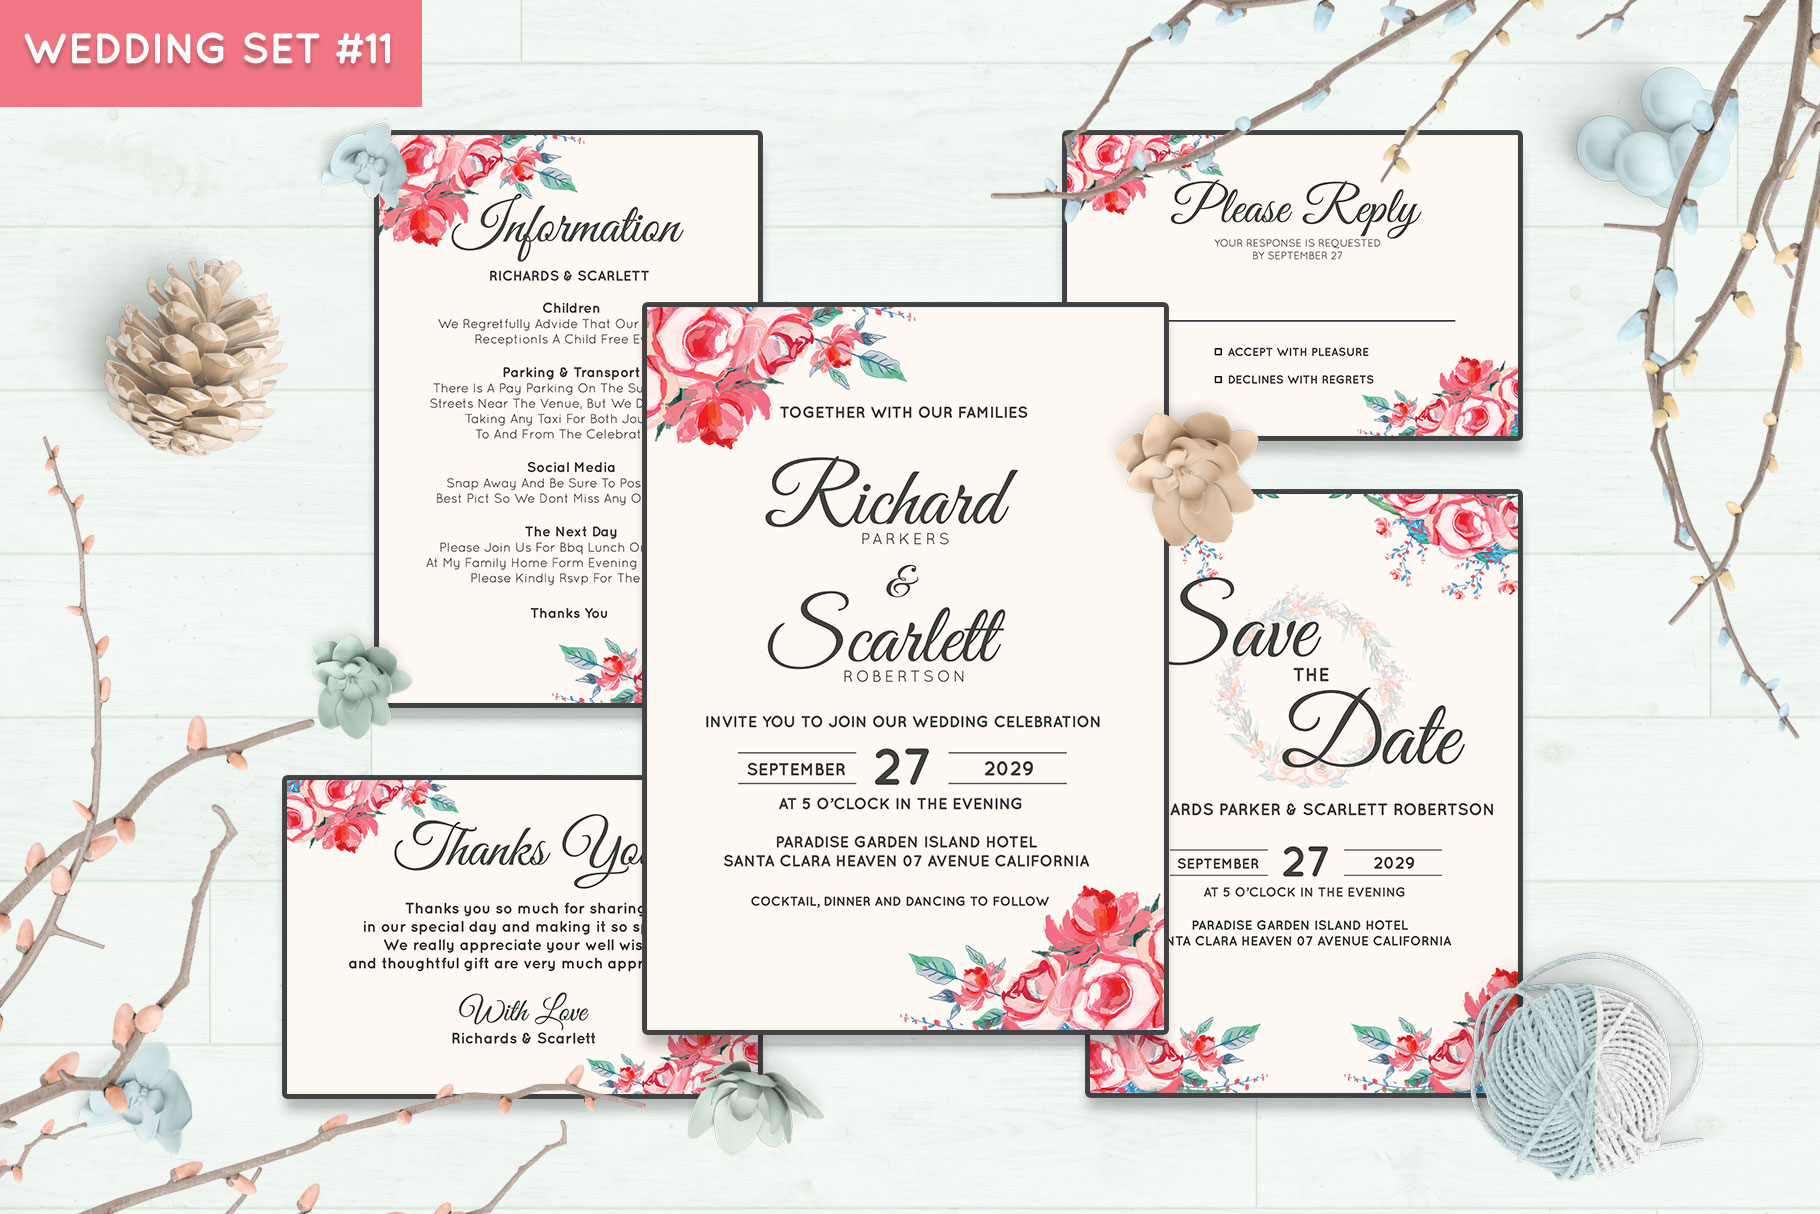 Wedding Invitation Set #11 Watercolor Floral Flower Style example image 1